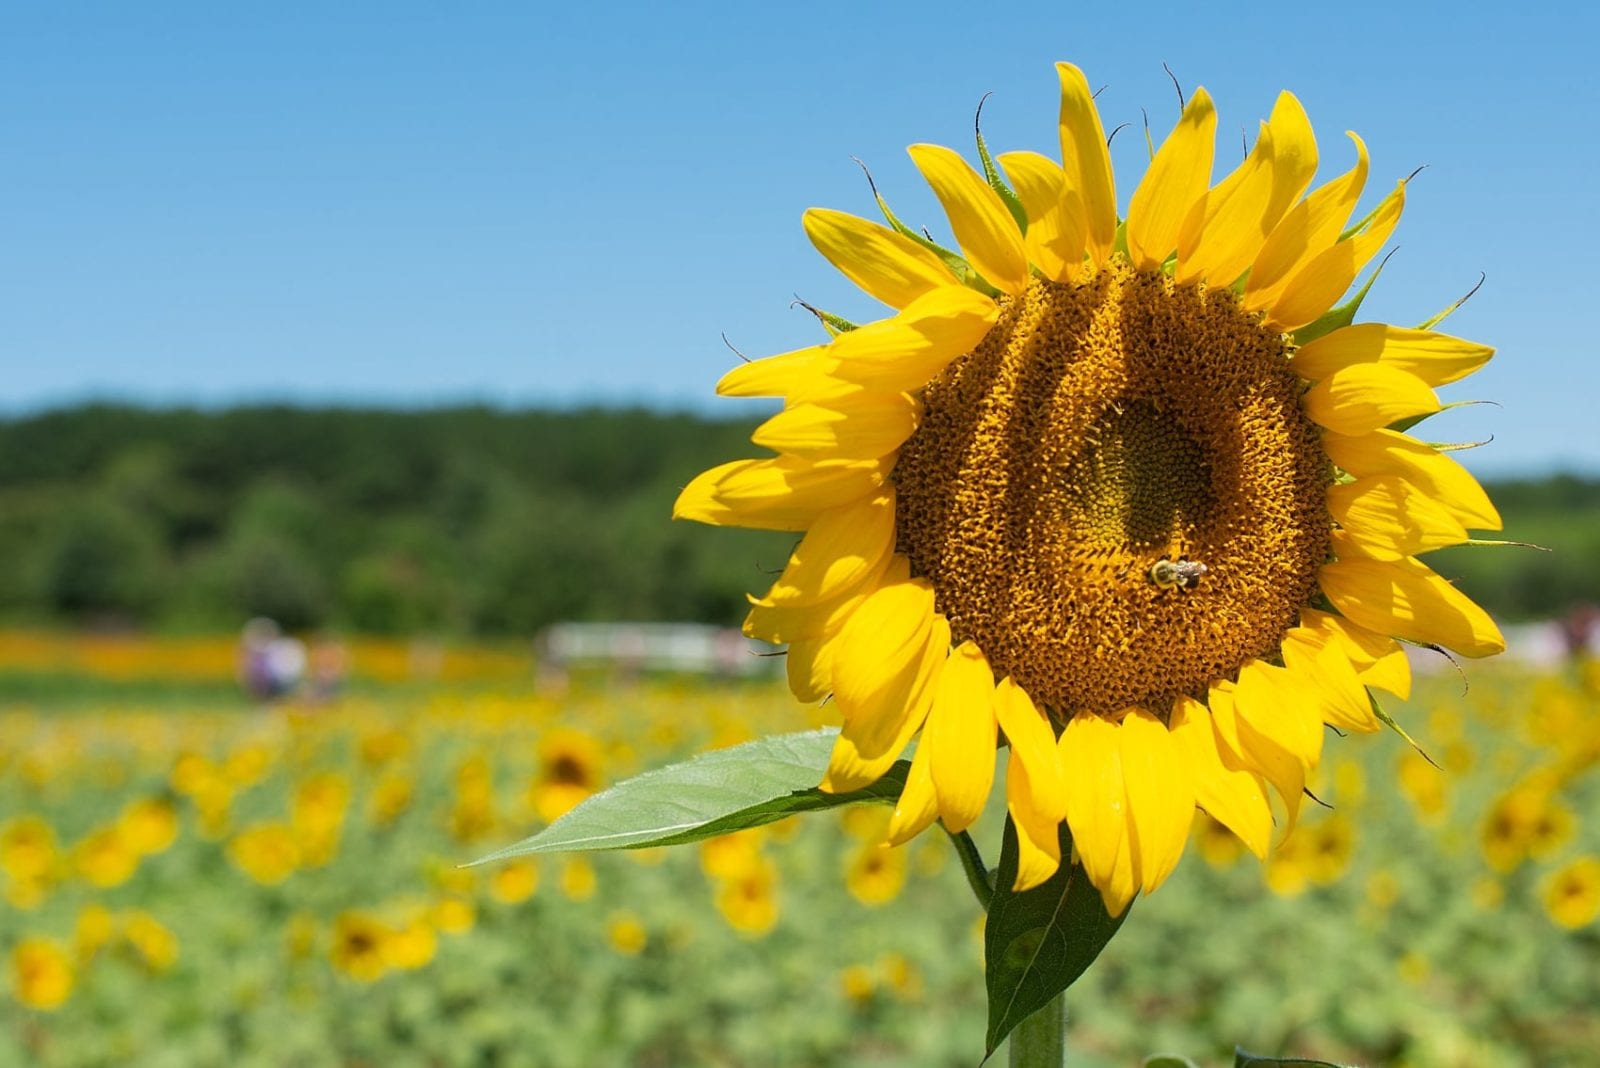 Raleigh Sunflowers Field In North Carolina All You Need To Know